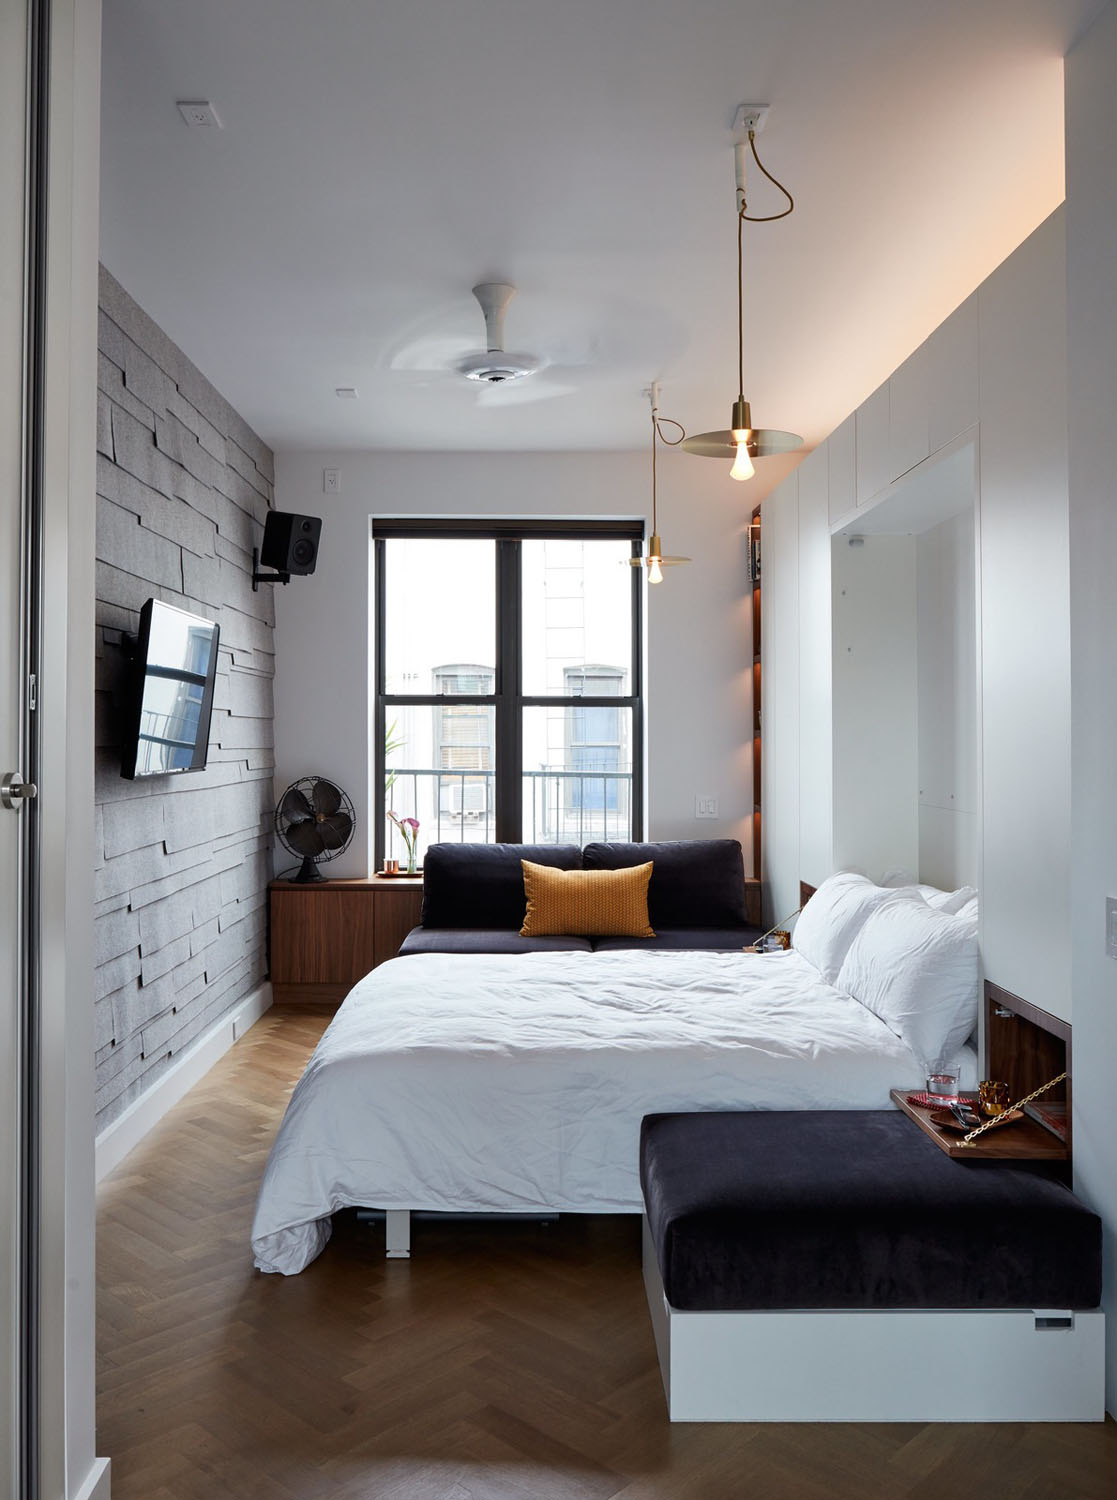 Beds For Studio Apartments Tiny 350 Square Foot Smart Apartment In New York City